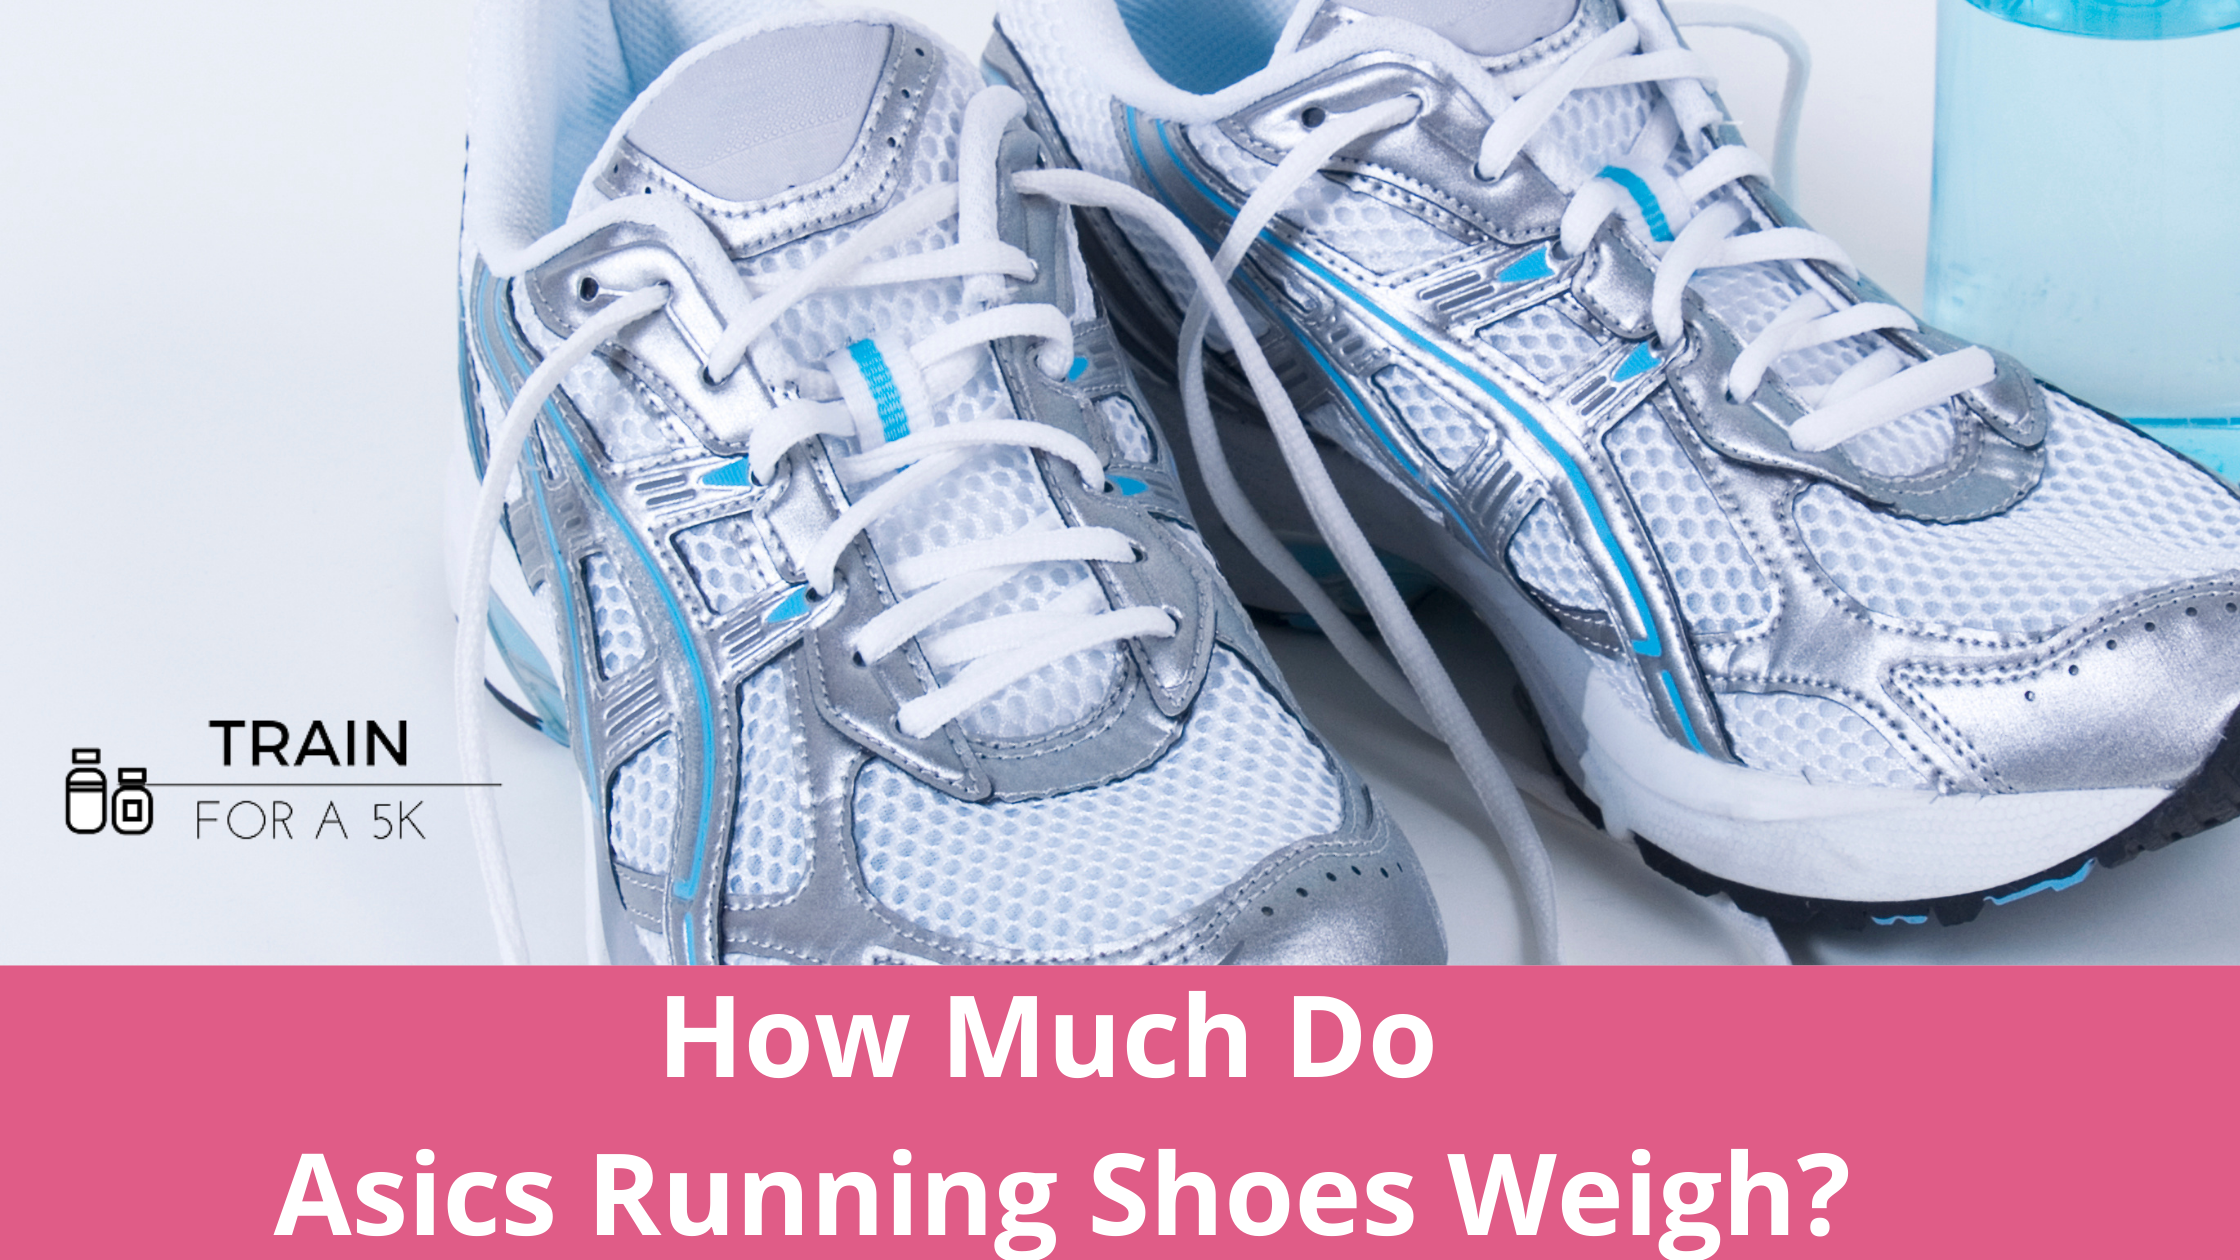 The average weight of an ASICS running shoe is 9.42 ounces in men's and 8.16 ounces in women's. The heaviest ASICS running shoe is the Gel Nimbus and the lightest is the MetaSpeed Edge.